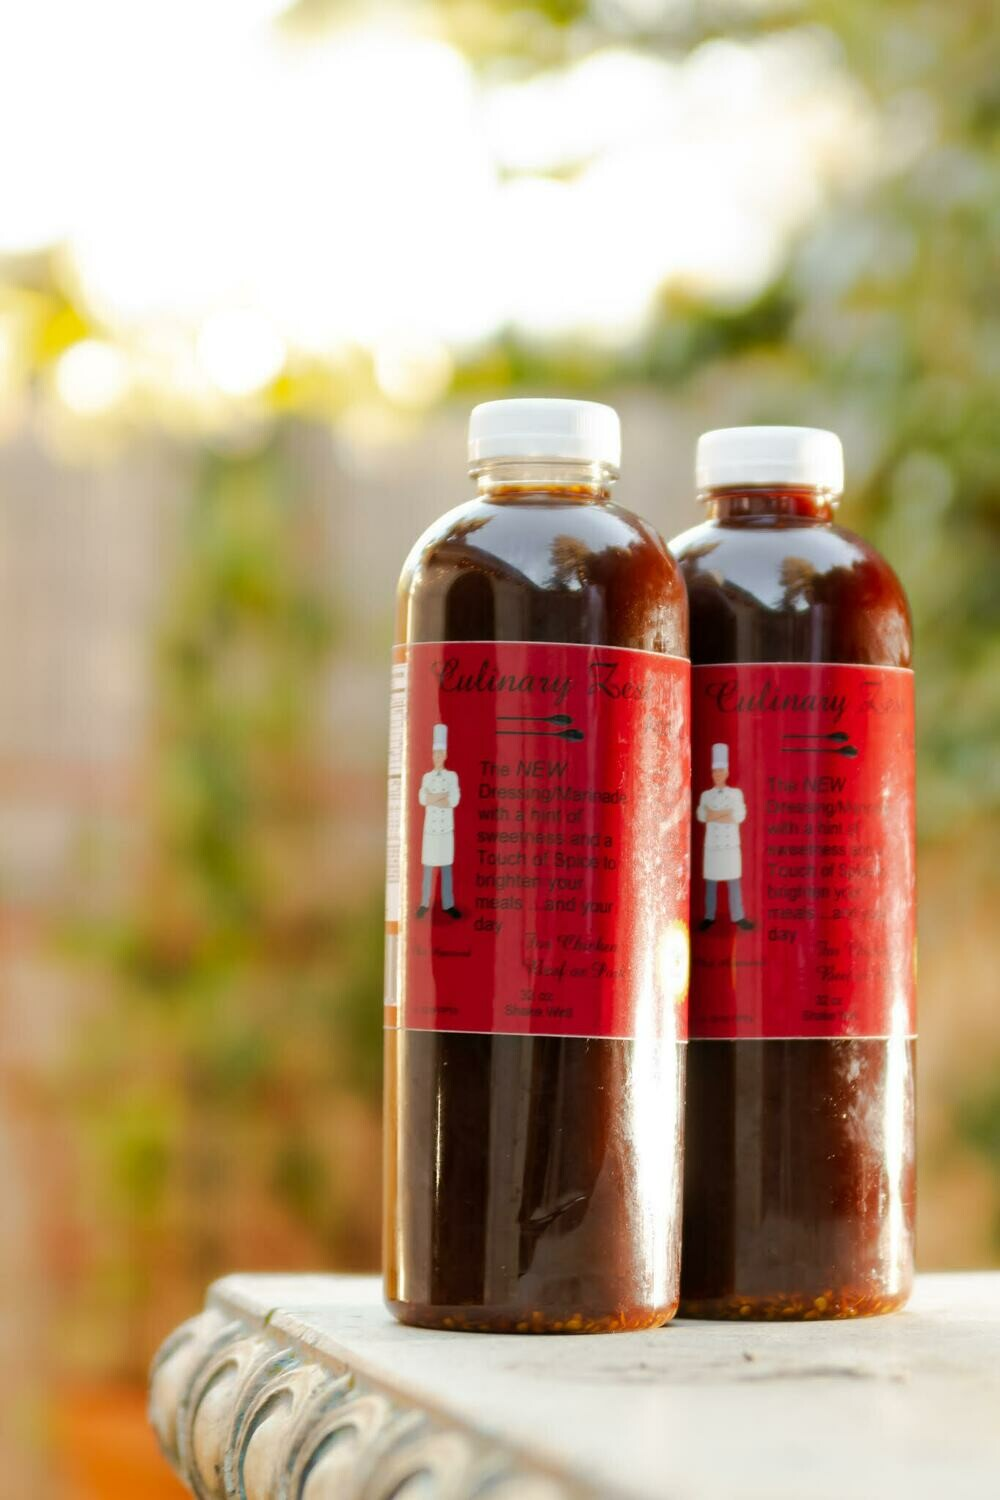 Culinary Zest Dressing & Marinade 2 PACK (TWO 32 oz Bottles)  w/ Baseball cap GIFT Pack FREE SHIPPING